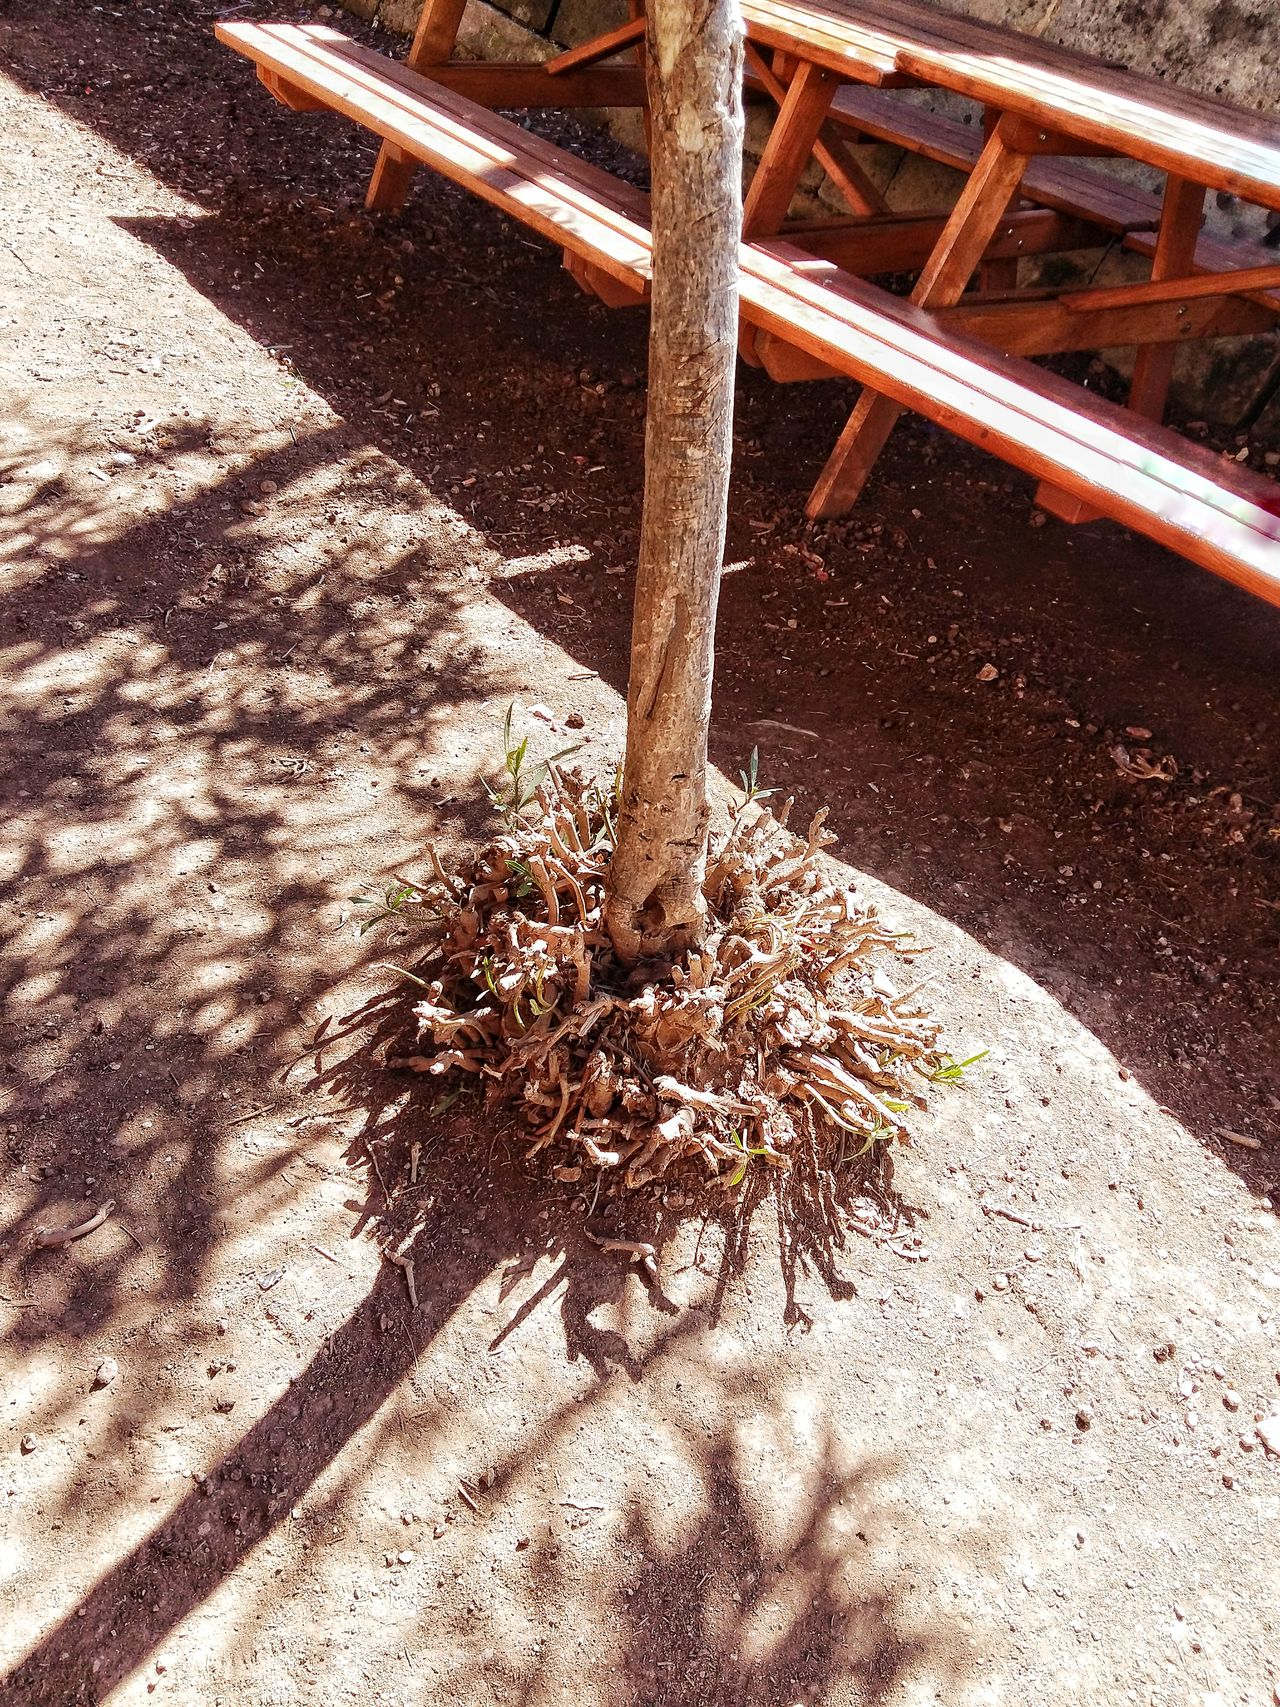 A nature Sunlight Shadow Close-up Outdoors No People Day Nature Tree Thing Idontknow EyeEmNewHere Malta Junior College Msida Ground Dirt Shrubbery Bush Thrusday New First10 POTD Sunny Hot Day Summer